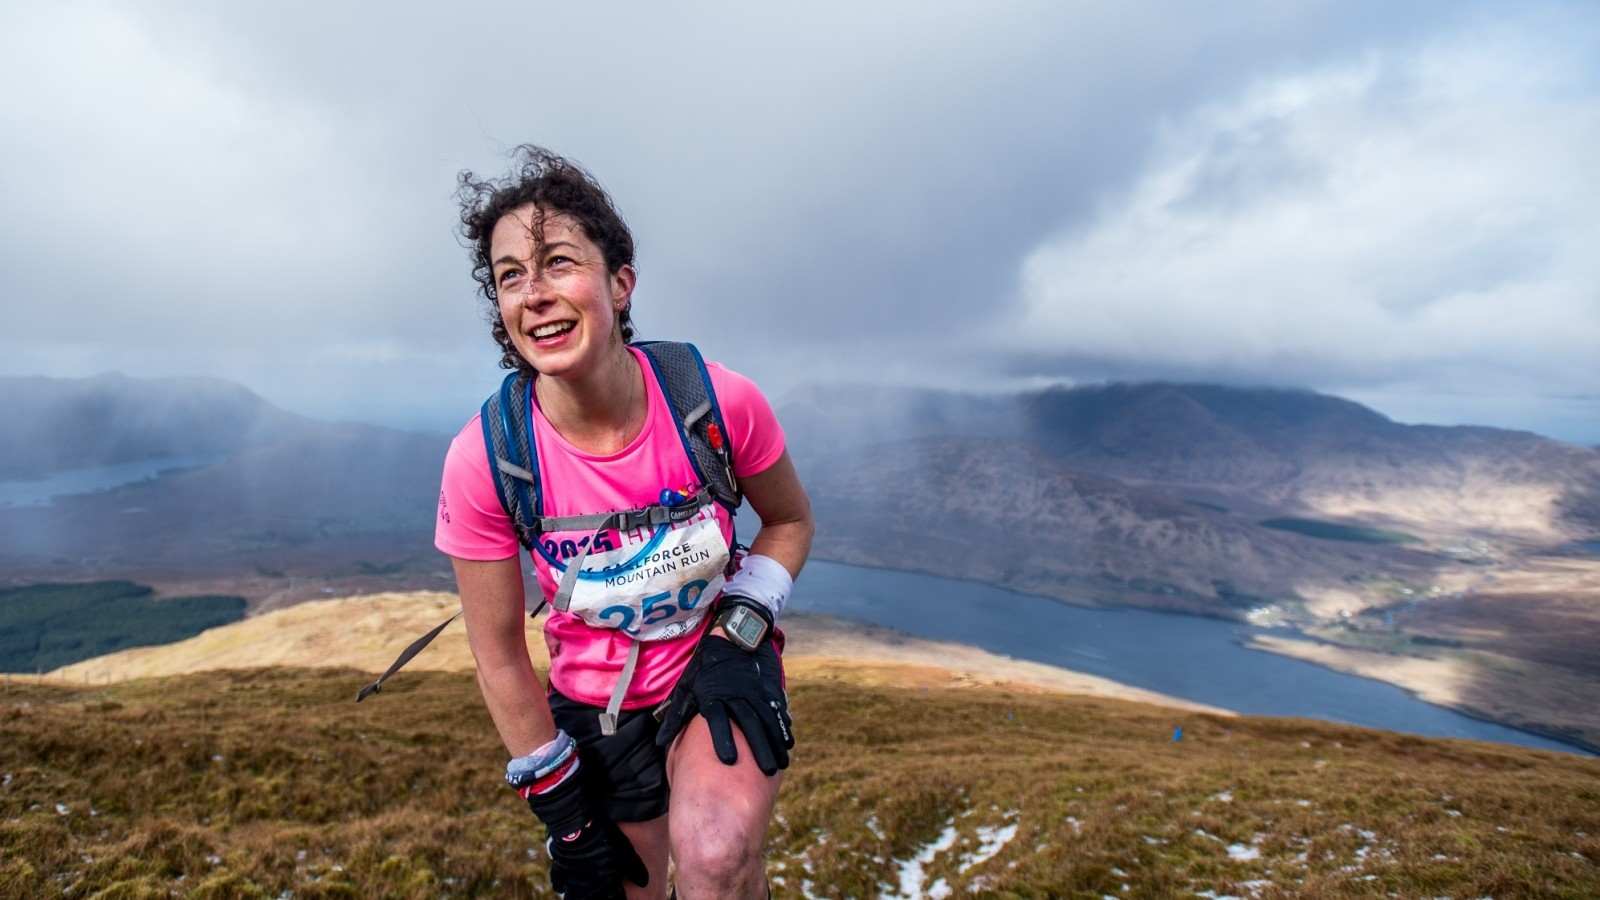 Gaelforce Mountain Run - 12/22km - Connemara